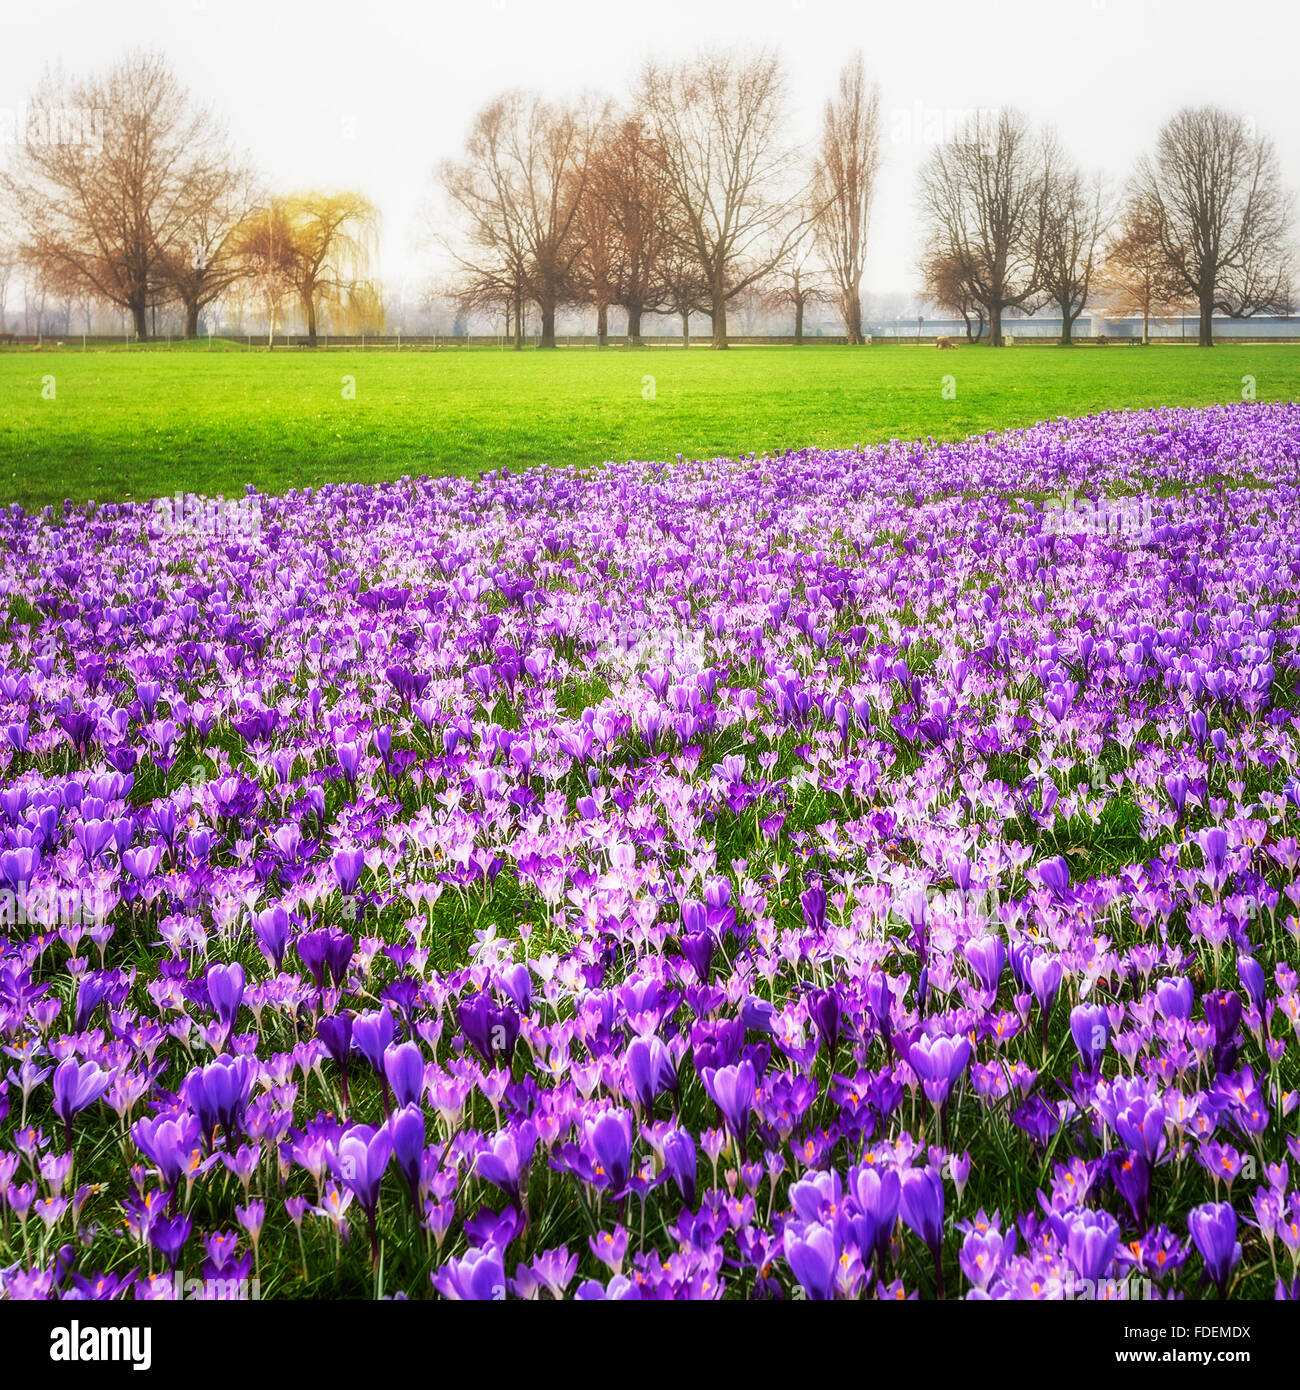 Violett blooming crocus flowers in the park. Spring landscape. Beauty in nature - Stock Image